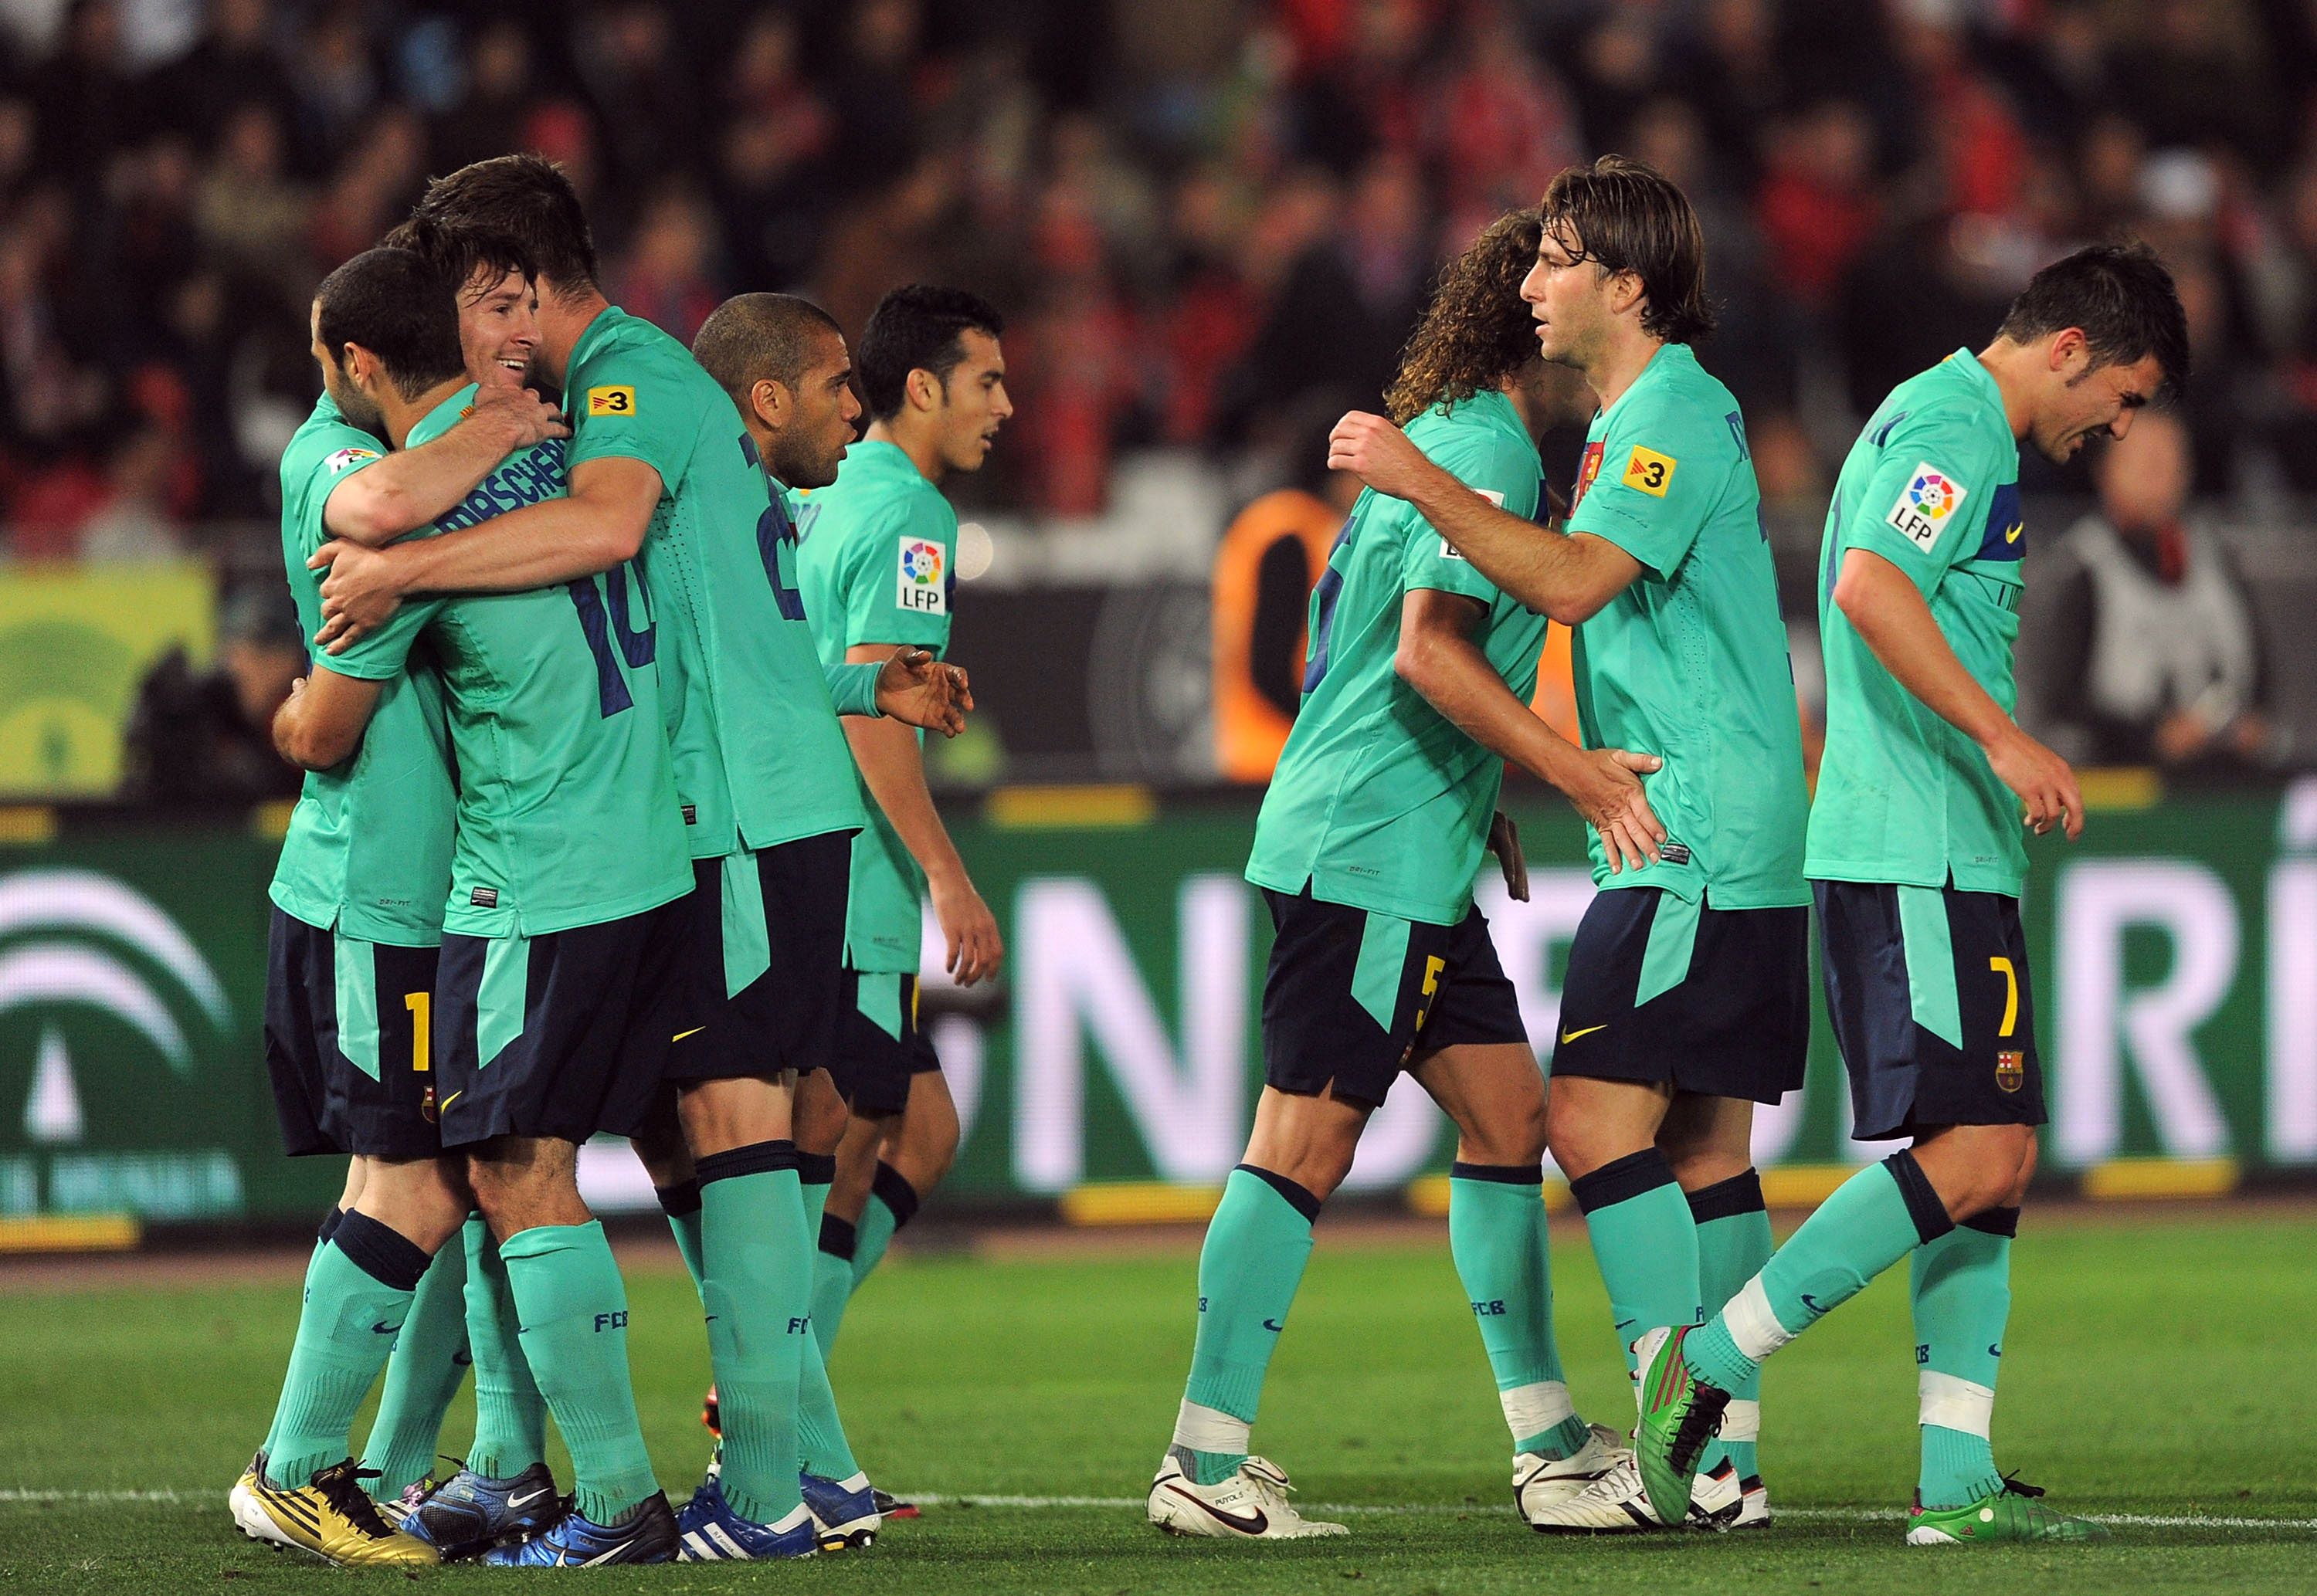 ALMERIA, SPAIN - NOVEMBER 20:  Barcelona players celebrate after scoring a goal during the La Liga match between UD Almeria and Barcelona at Estadio del Mediterraneo on November 20, 2010 in Almeria, Spain.  (Photo by Denis Doyle/Getty Images)